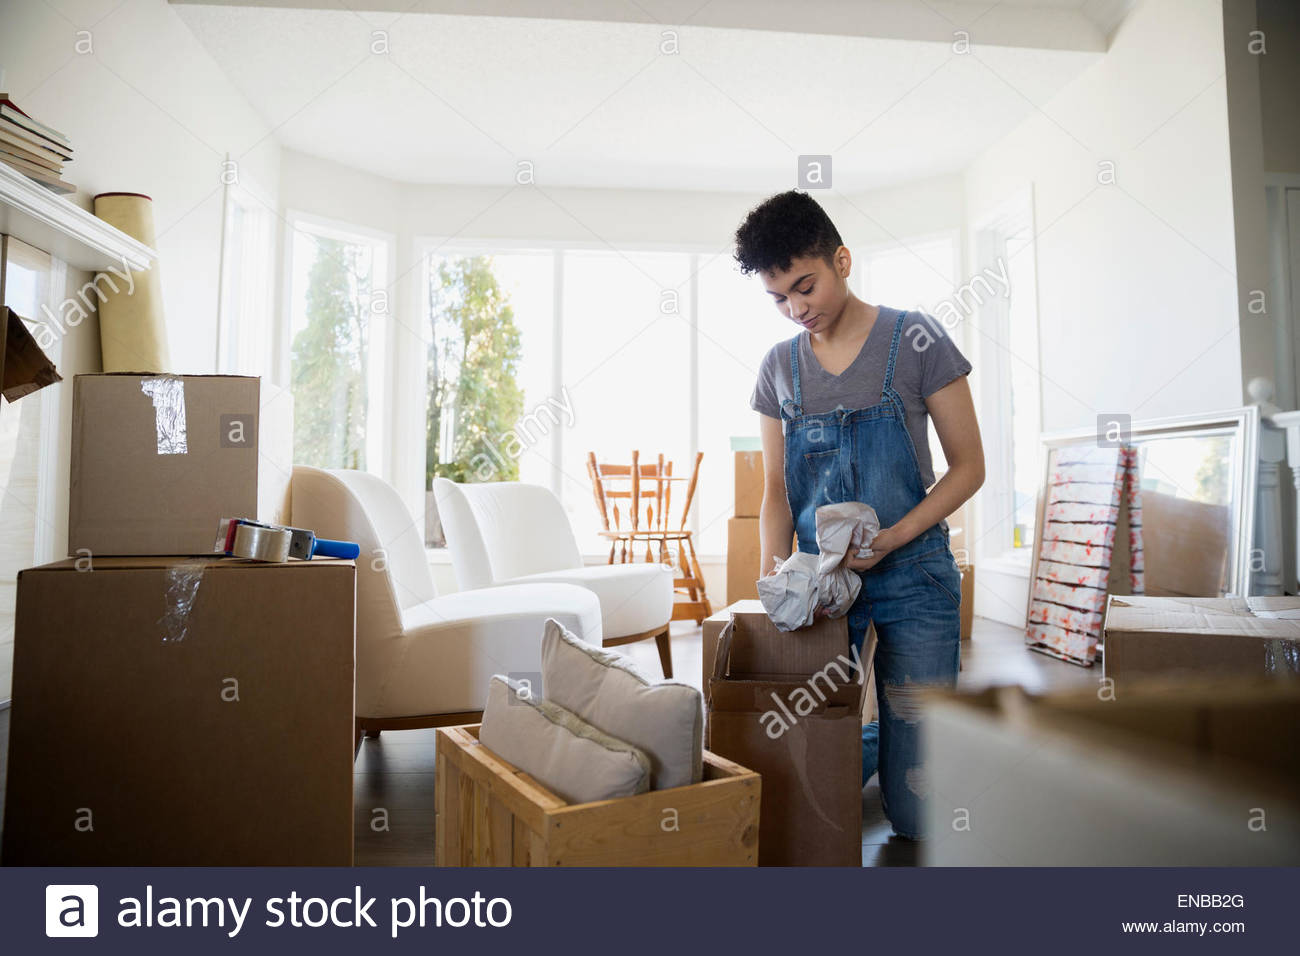 Woman packing belongings in moving boxes - Stock Image